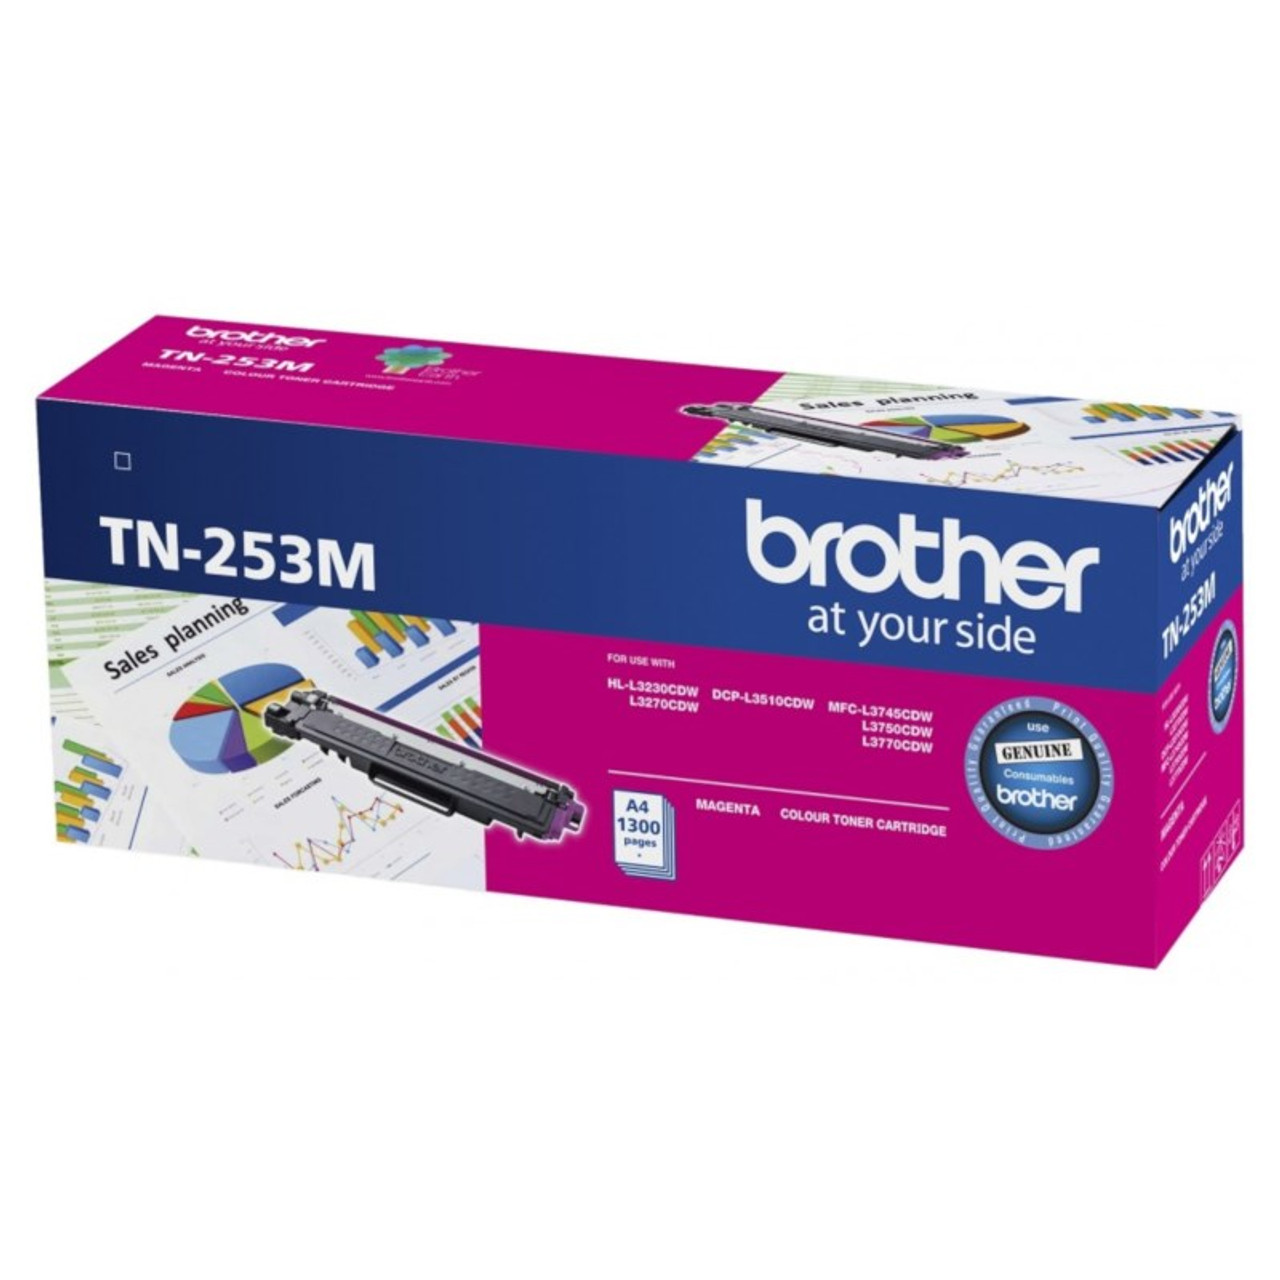 Image for Brother TN-253M Magenta Toner Cartridge CX Computer Superstore